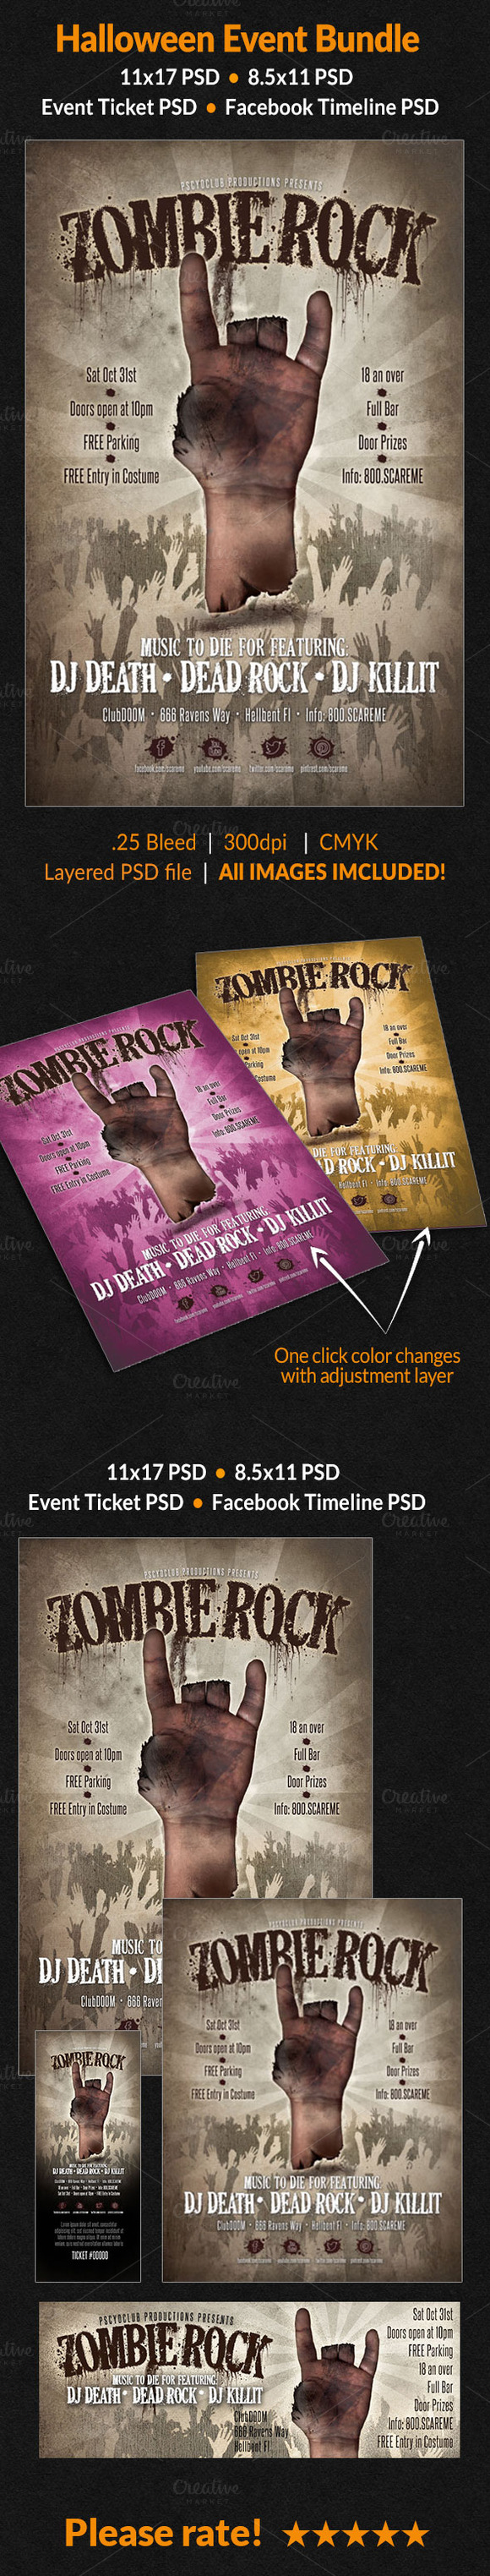 Zombie Event Bundle